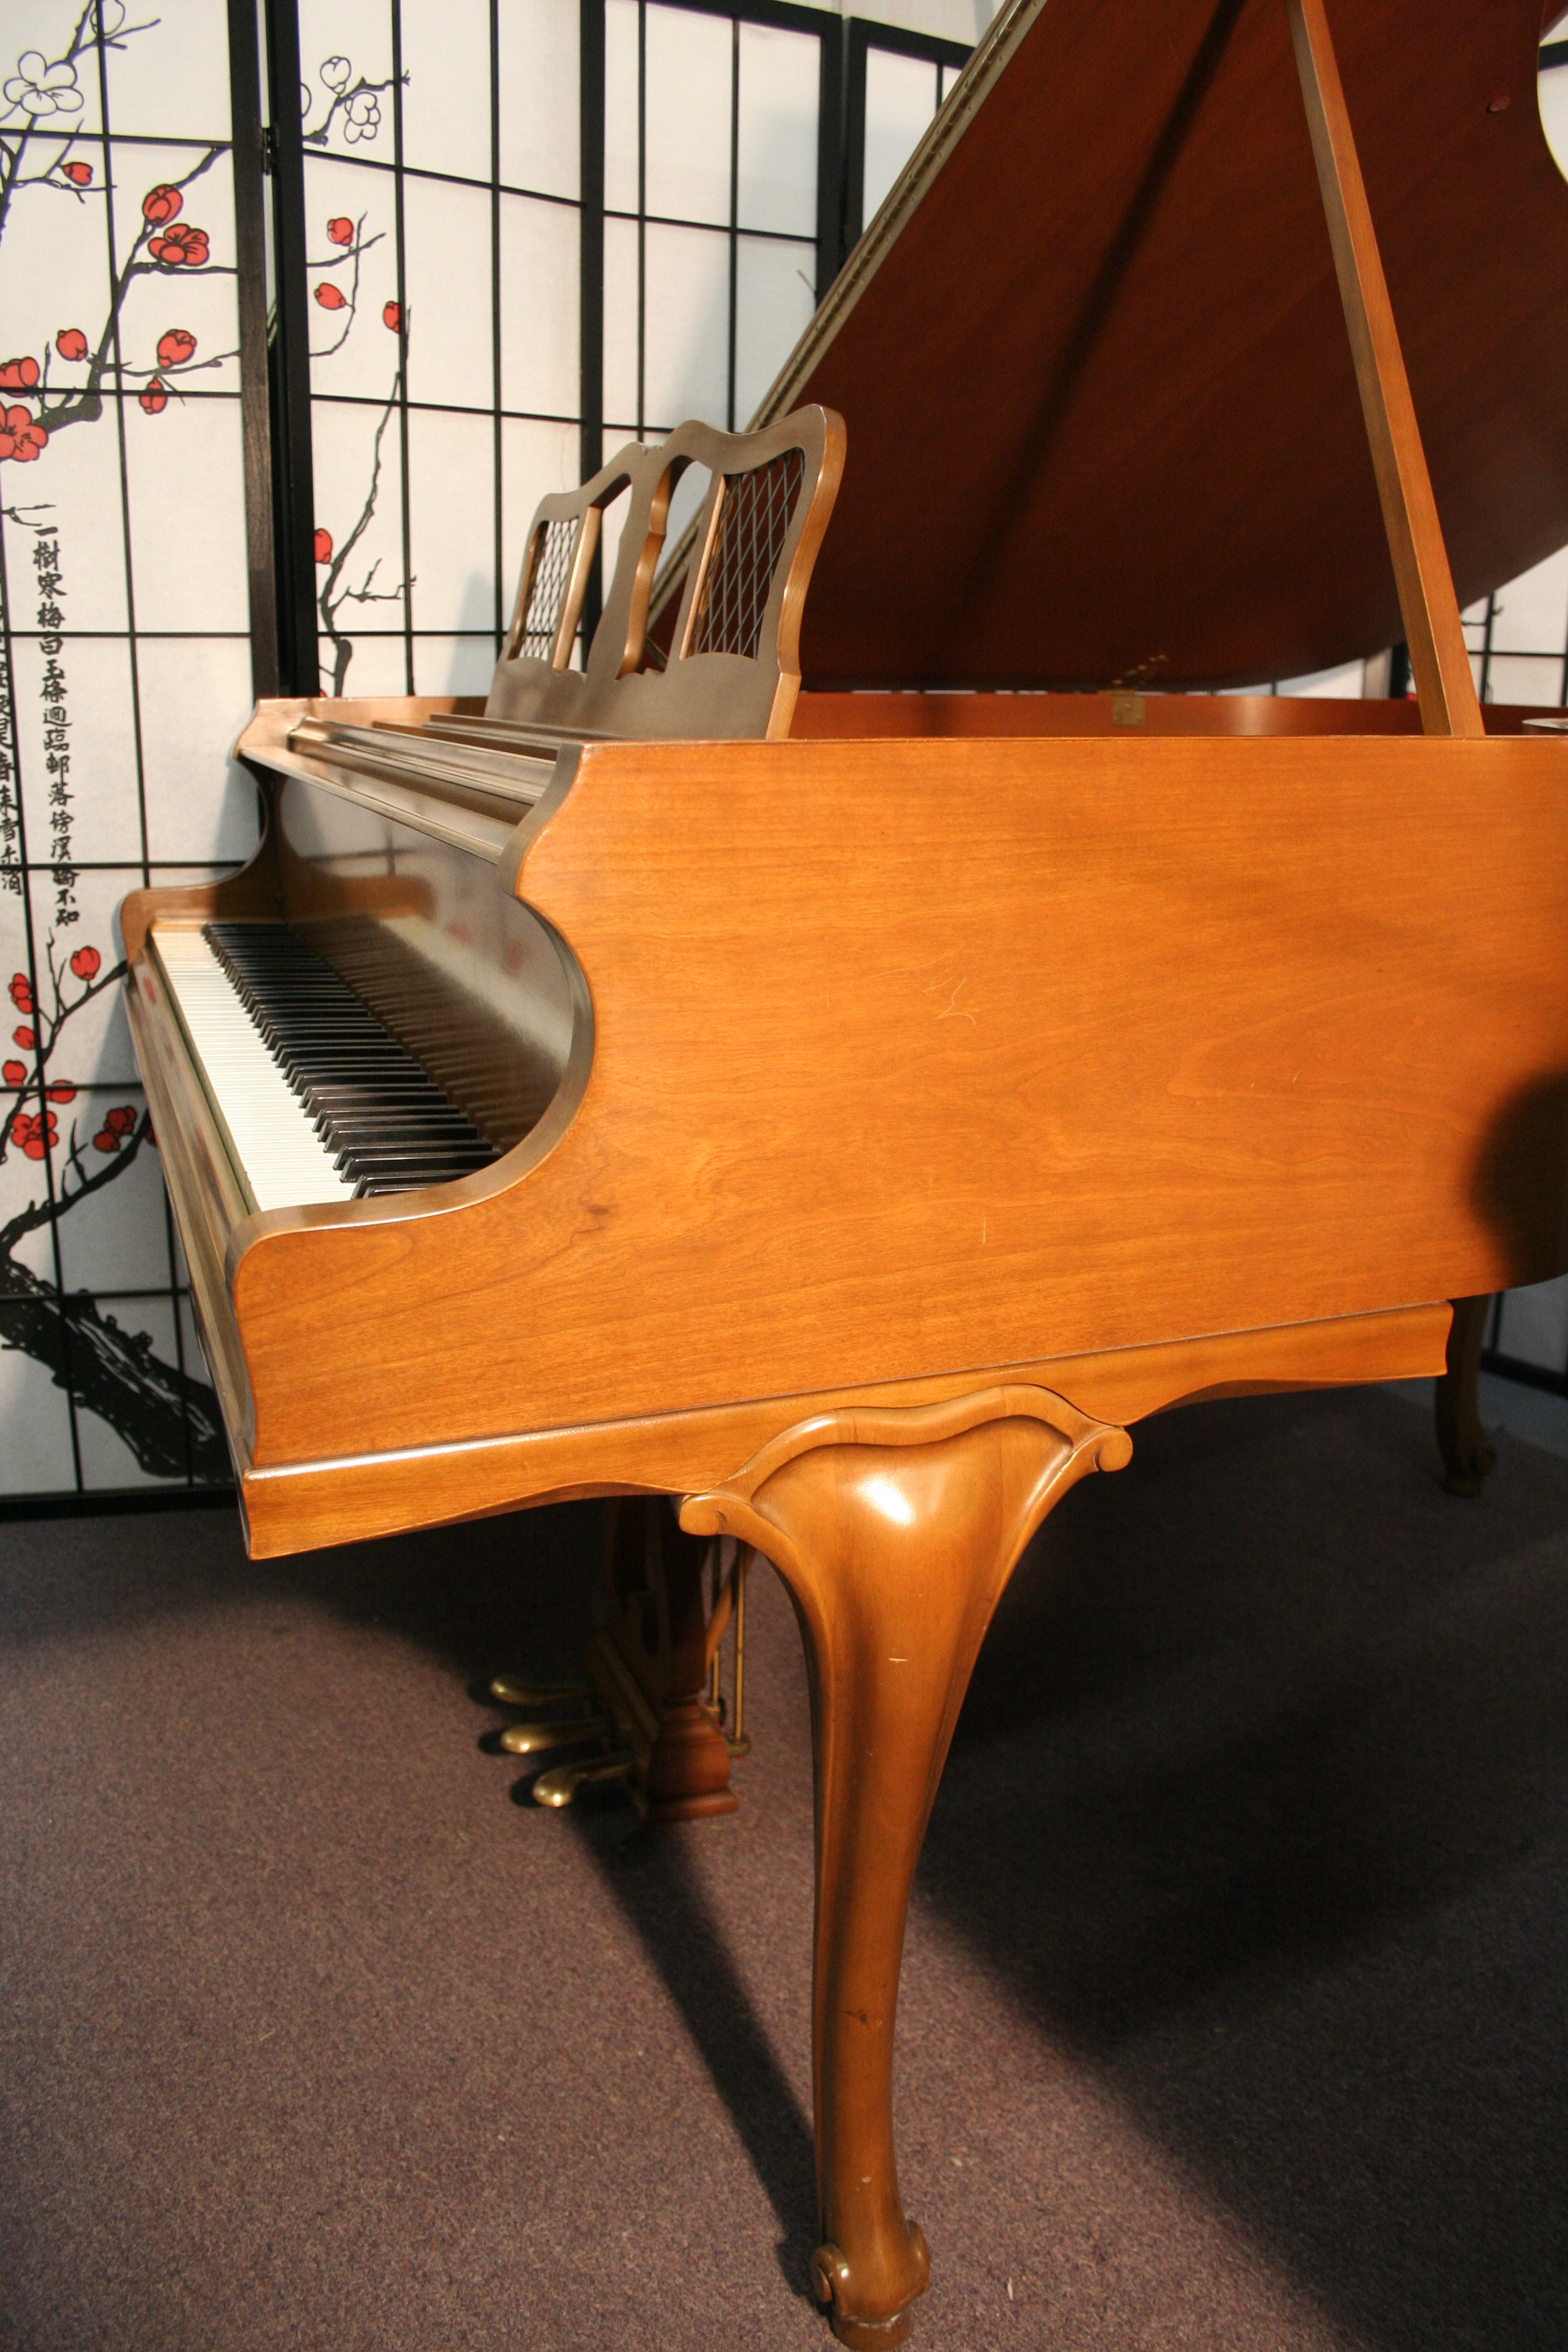 (SOLD CONGRATULATIONS DARLA )Art Case Knabe Baby Grand Piano, 1961, Pristine, Showroom Condition, Rich, sublime tone.